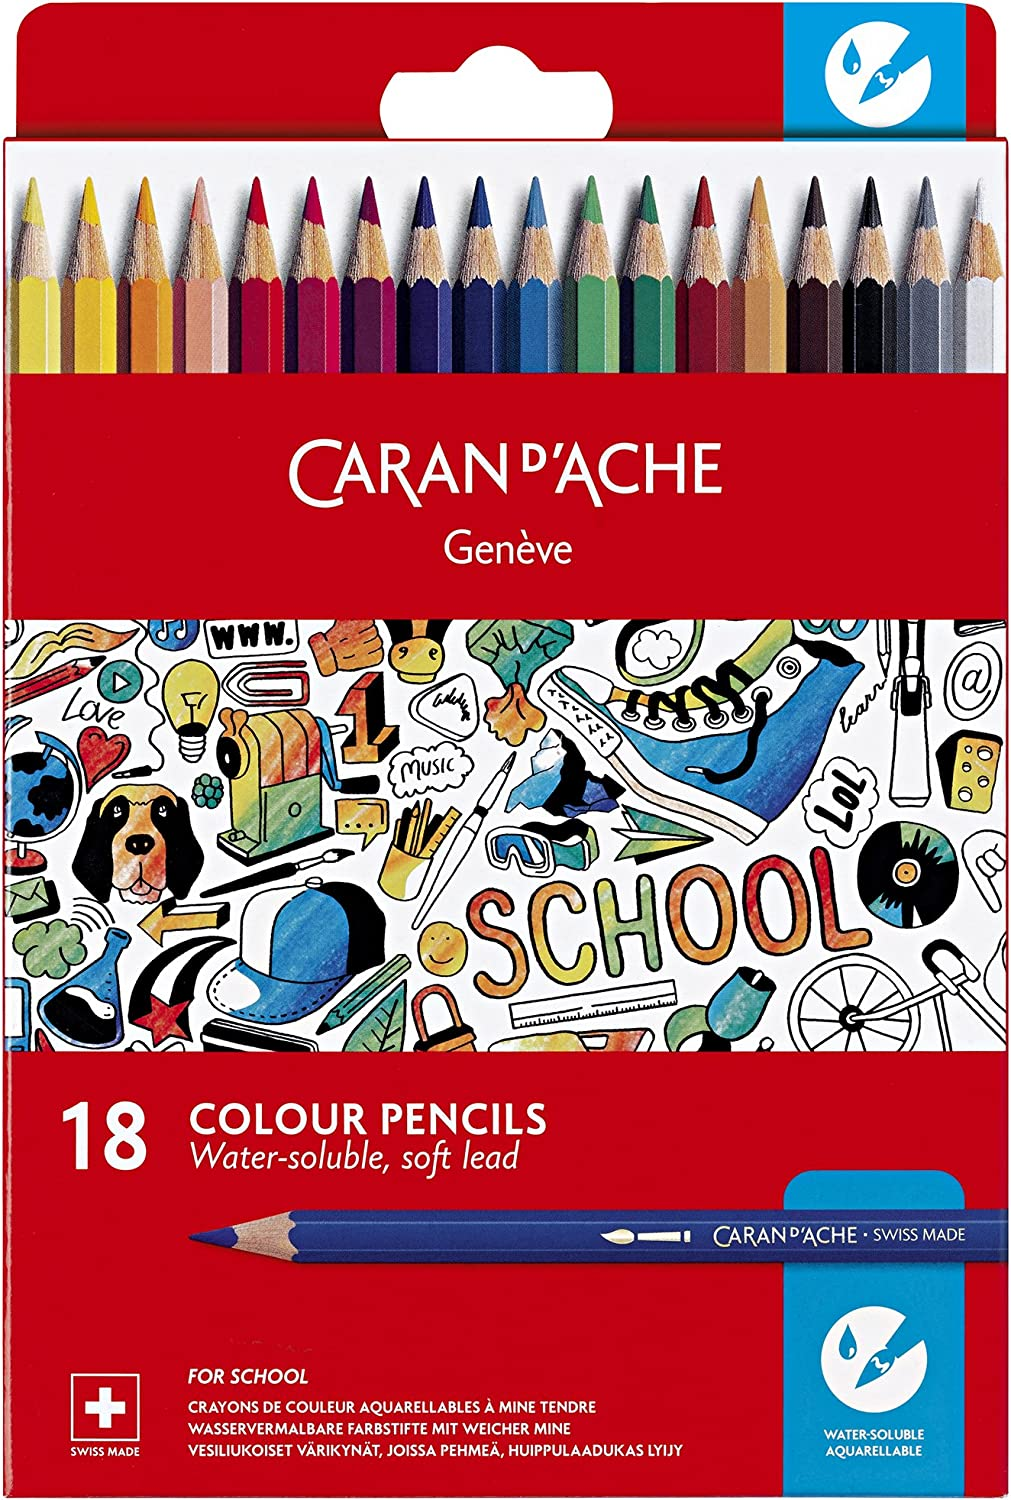 Caran excellence d'Ache School Line Water-soluble Pencils Colors Free shipping anywhere in the nation Color 18